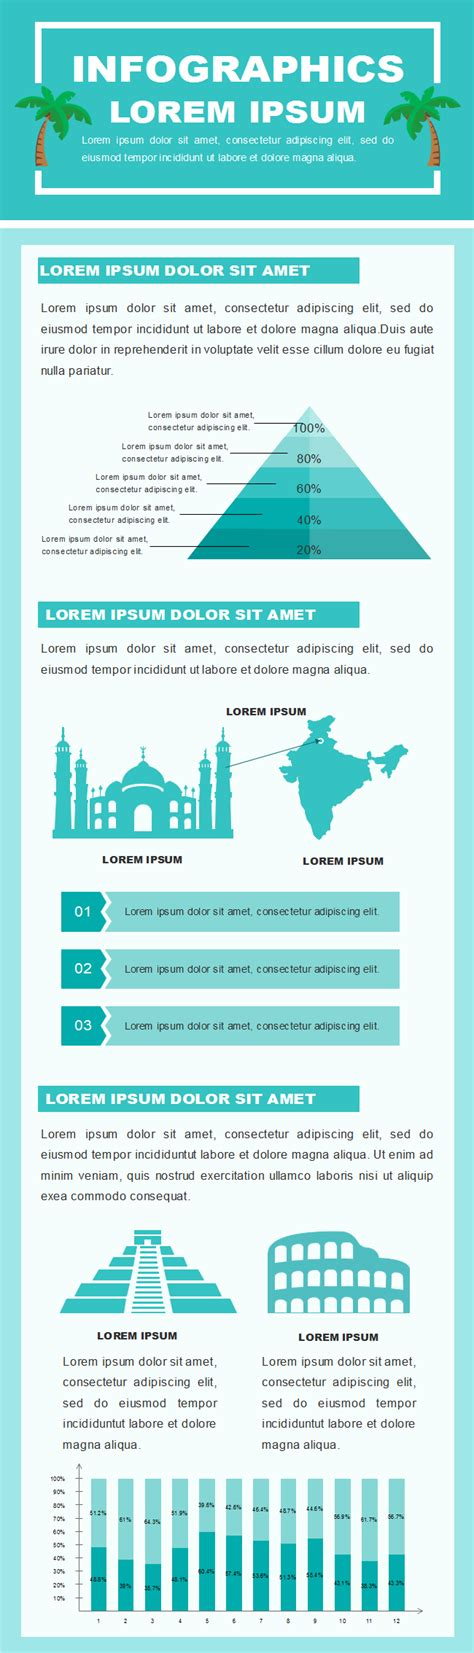 free editable infographic templates editable tourism infographic templates free